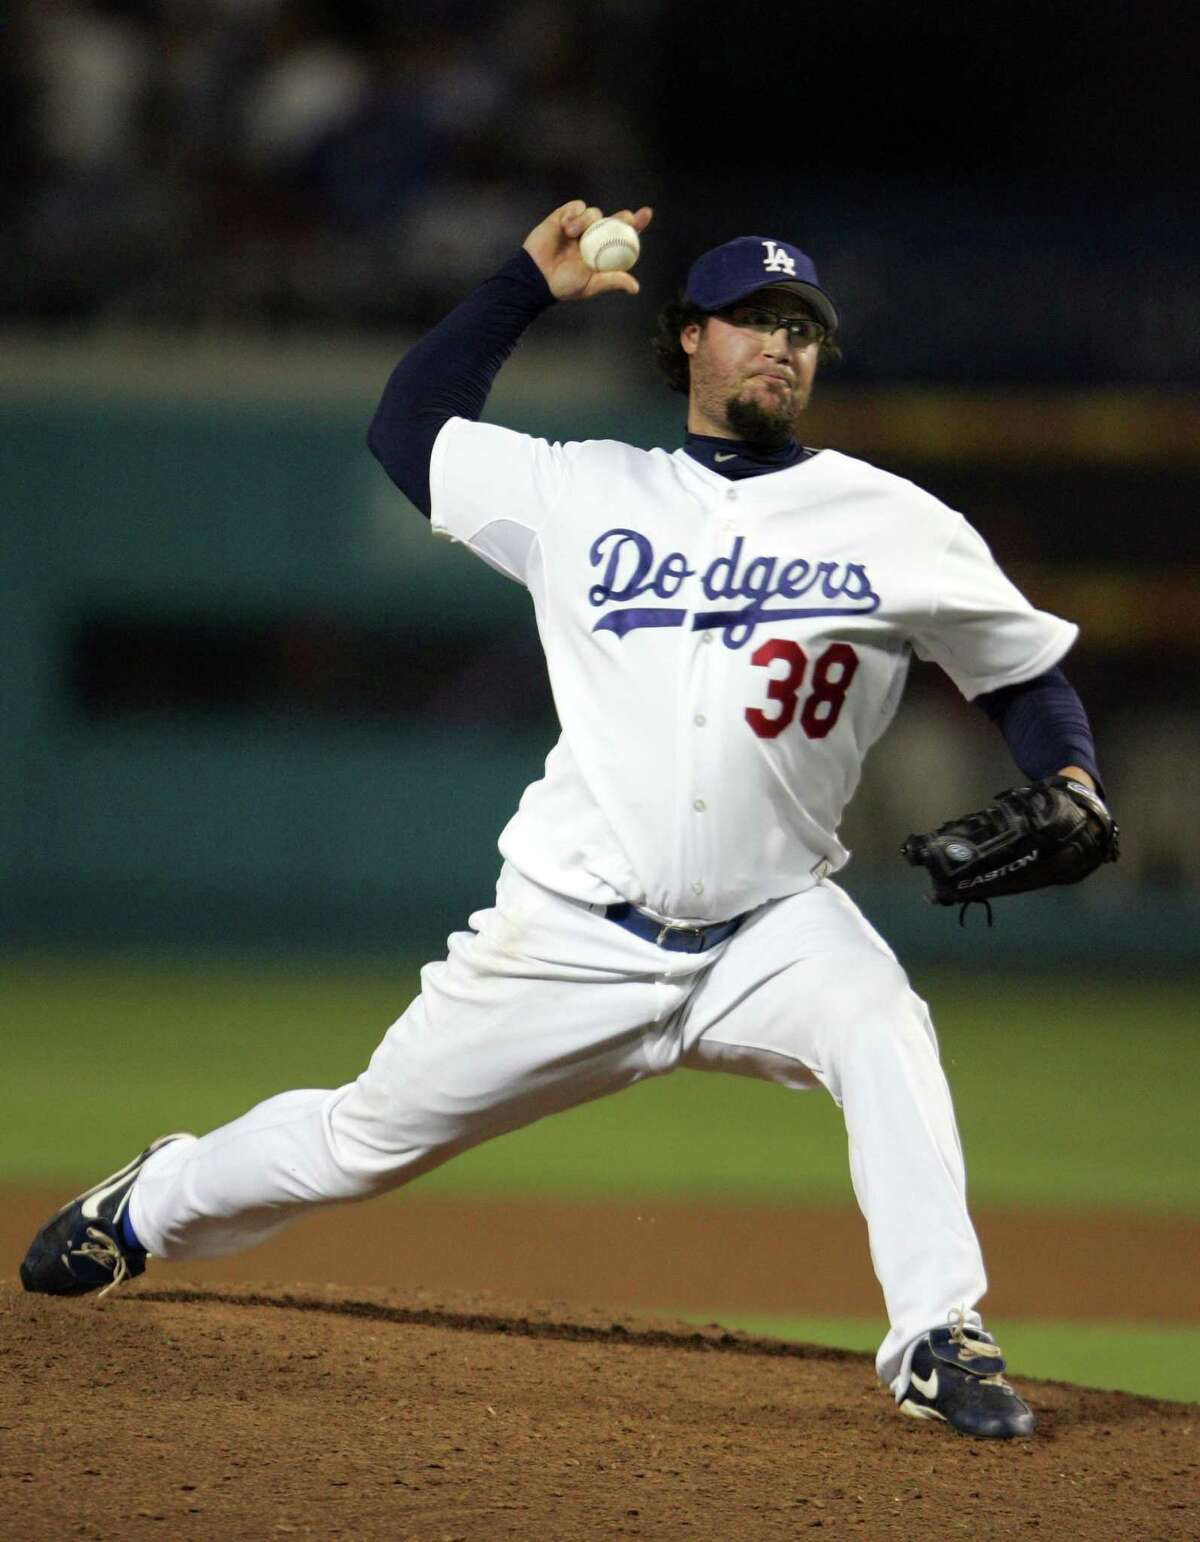 Los Angeles Dodgers pitcher Eric Gagne pitches against the Philadelphia Phillies during the ninth inning in an MLB baseball game, Friday, June 2, 2006, in Los Angeles. (AP Photo/Jeff Lewis)